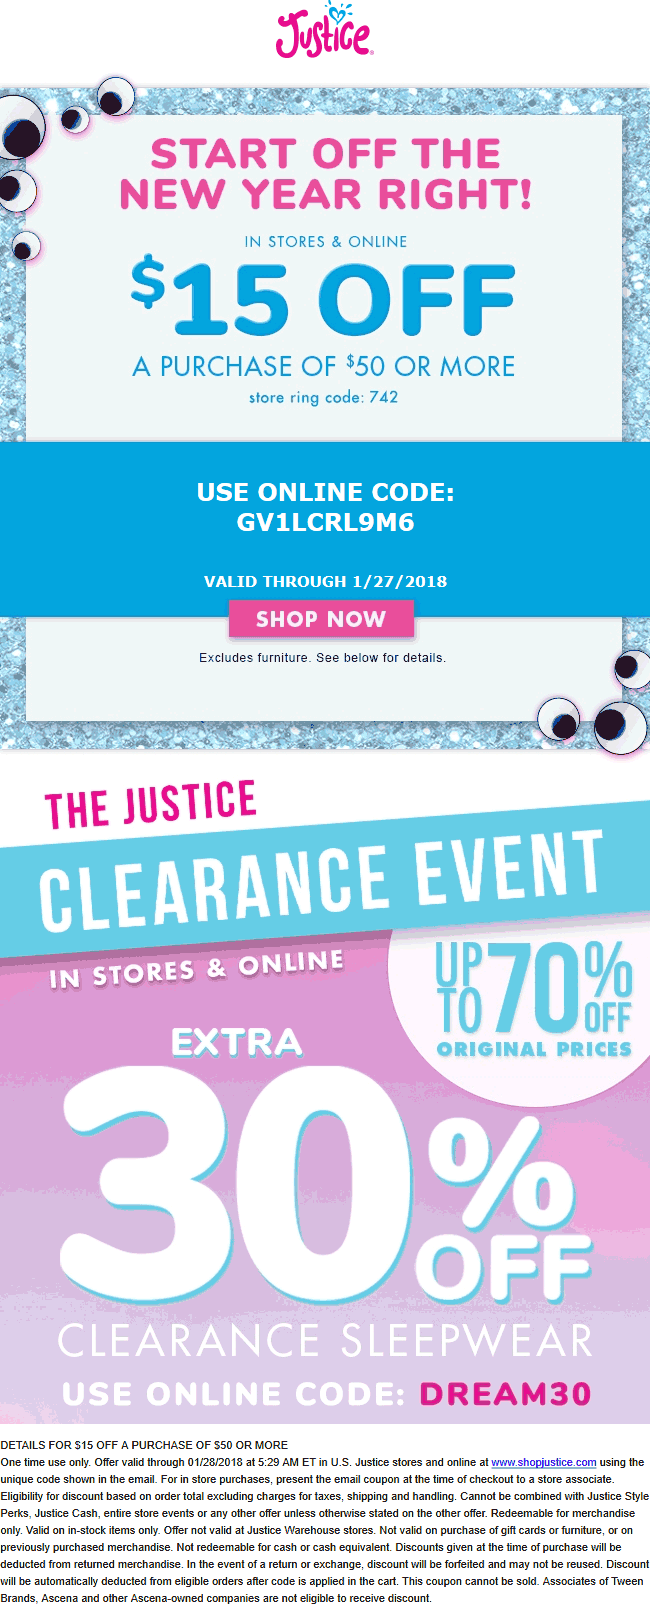 justice coupons 2019 in store